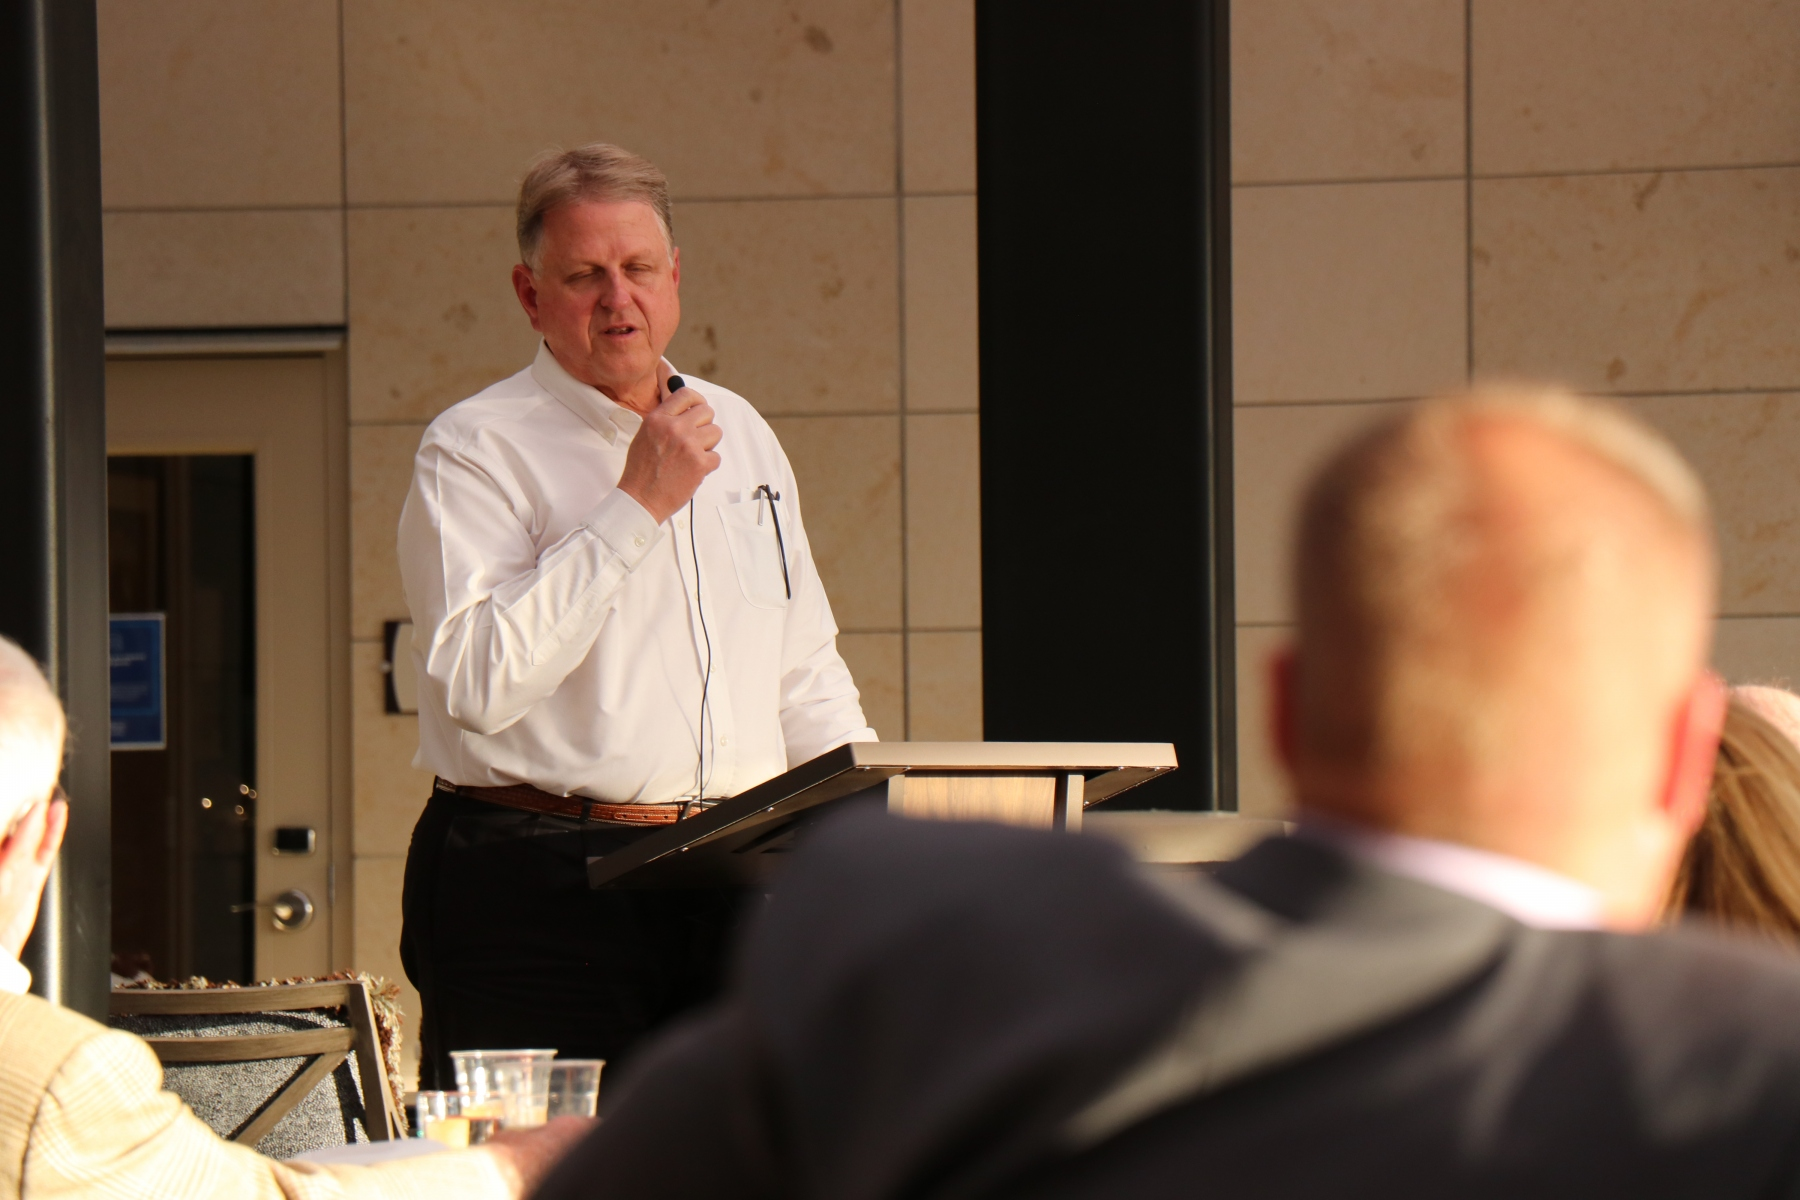 Terry-IMG_6395